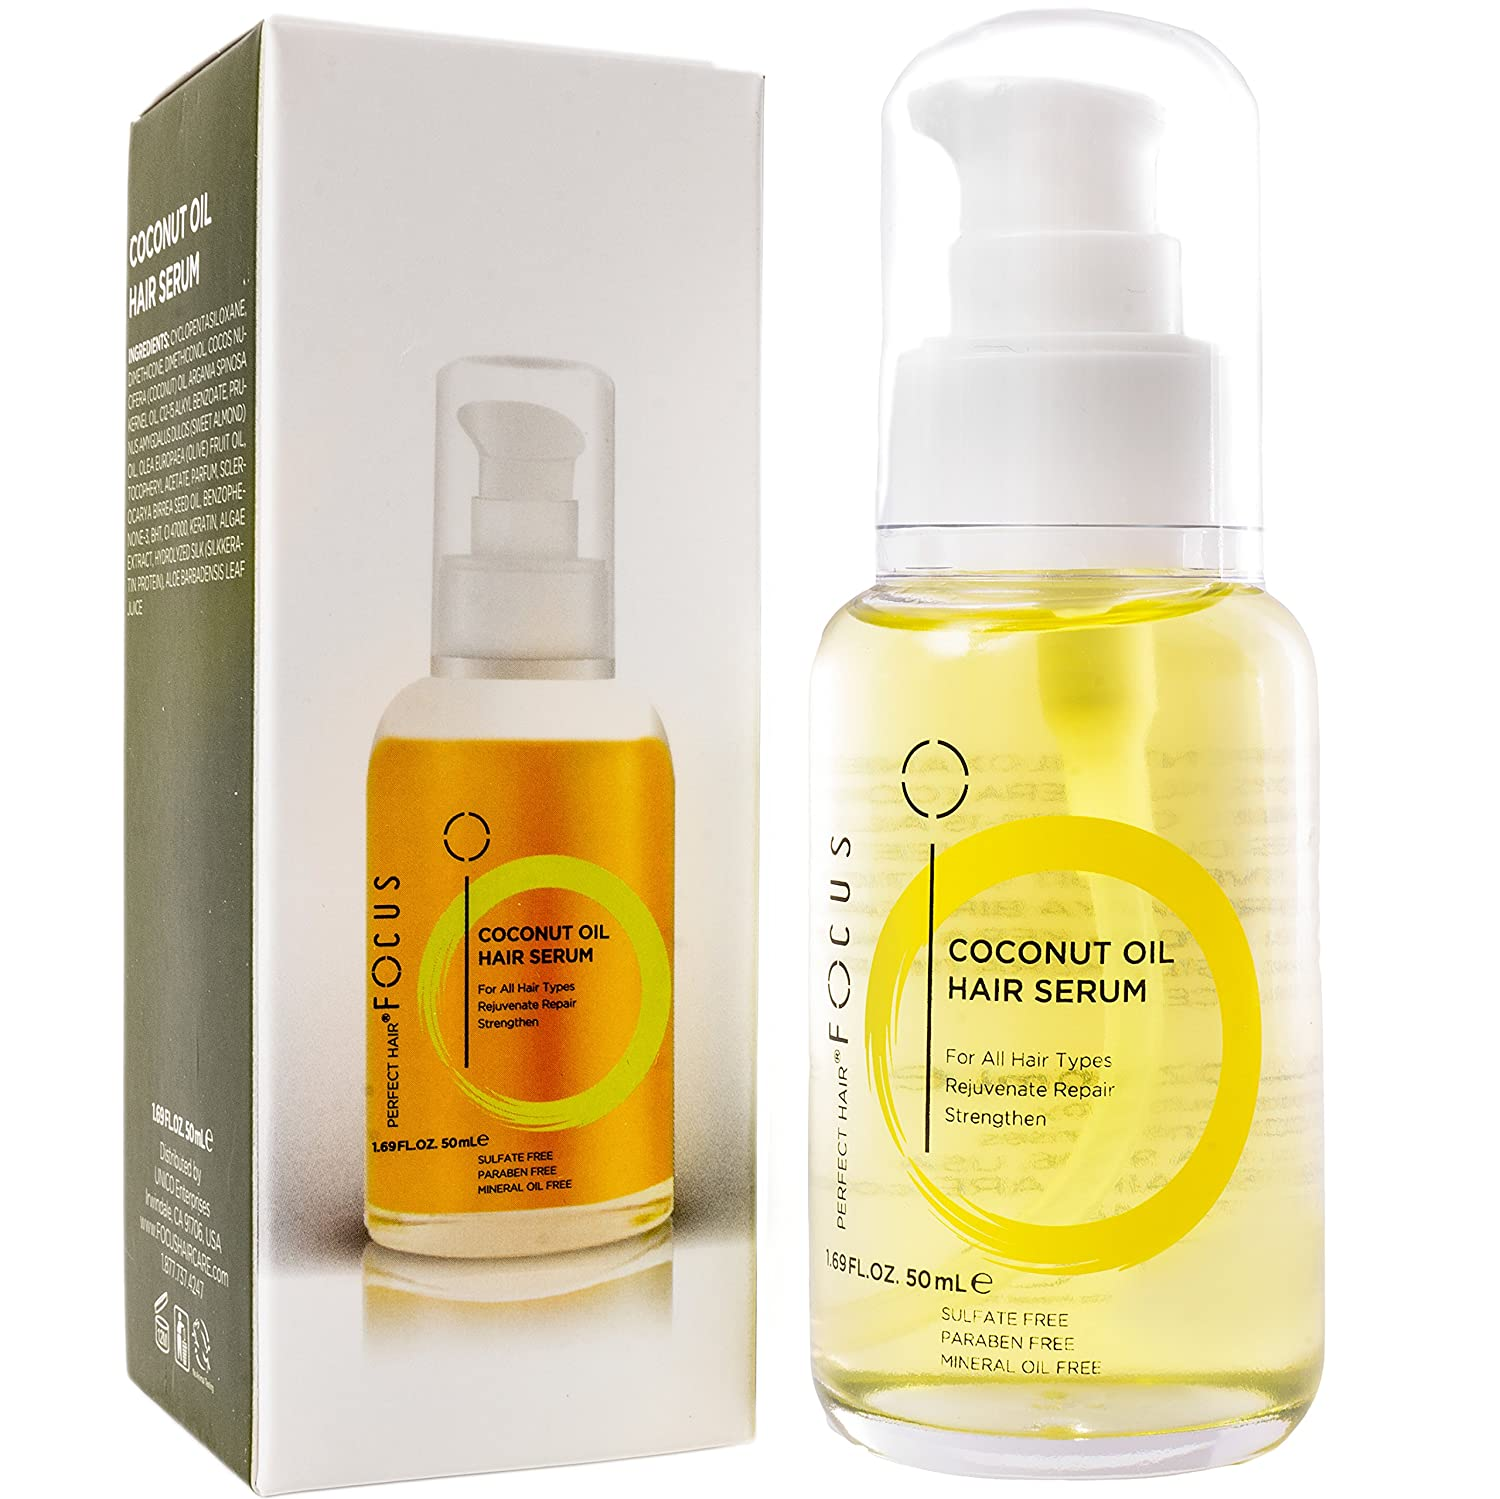 Focus Coconut Oil Hair Serum - Infused with Raw Virgin Olive Oil, Sweet Almond, Keratin, Aloe and Algae Extract - Rejuvenate, Strengthen and Restore Hair to Natural Beauty - 50ml (1 Pack)